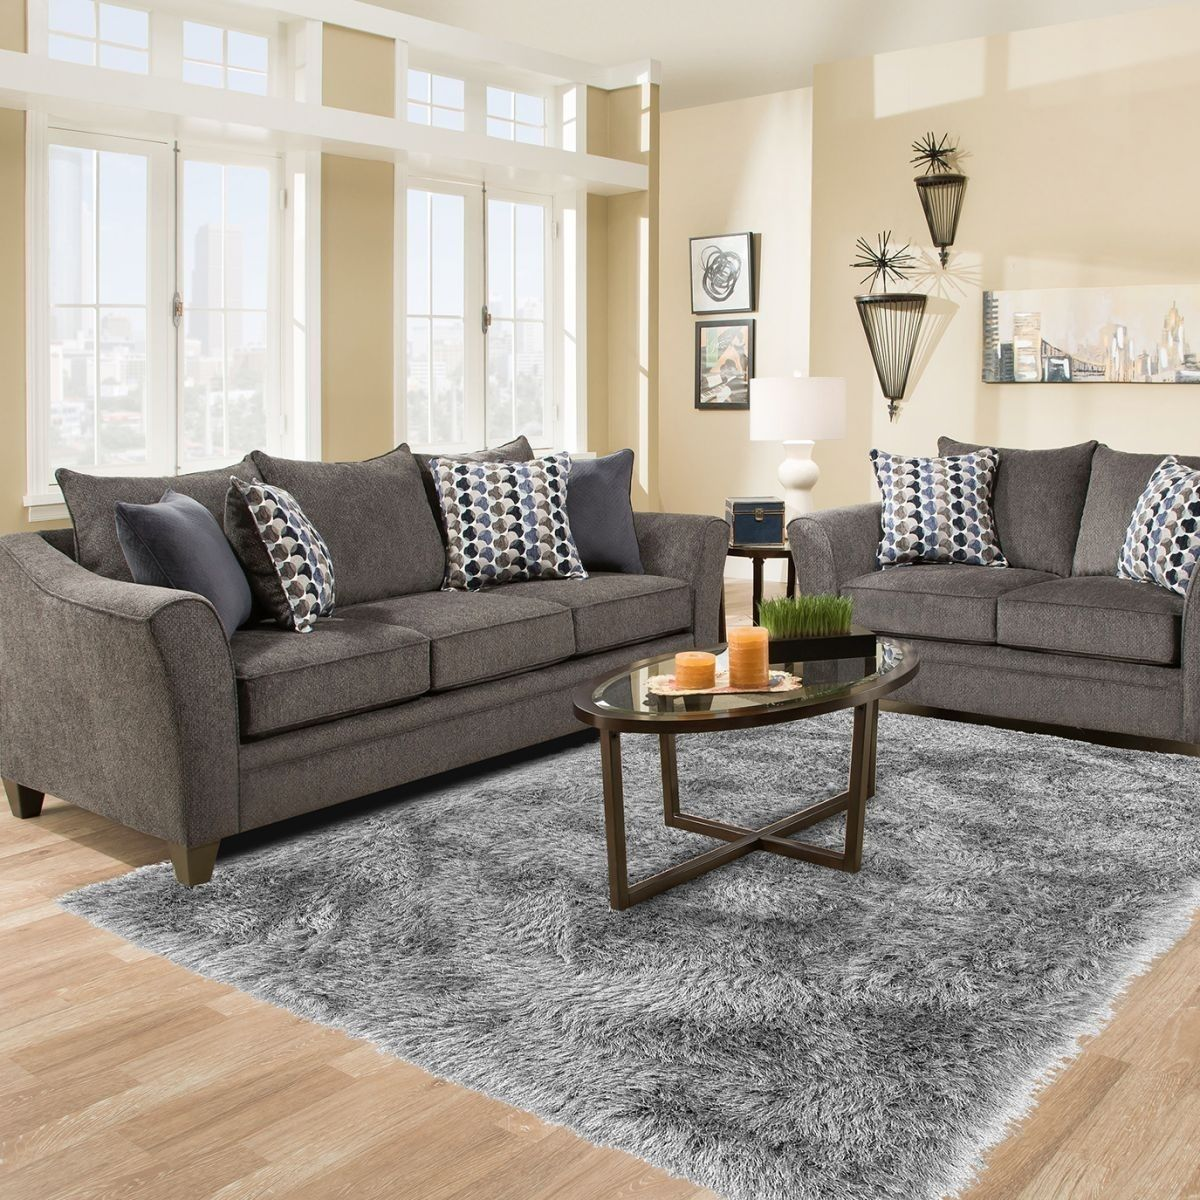 The Stylish And Welcoming Jada Living Room Collection Will Suit Any Transitional Decor It Fea Living Room Grey Transitional Decor Living Room Living Room Sets [ 1200 x 1200 Pixel ]